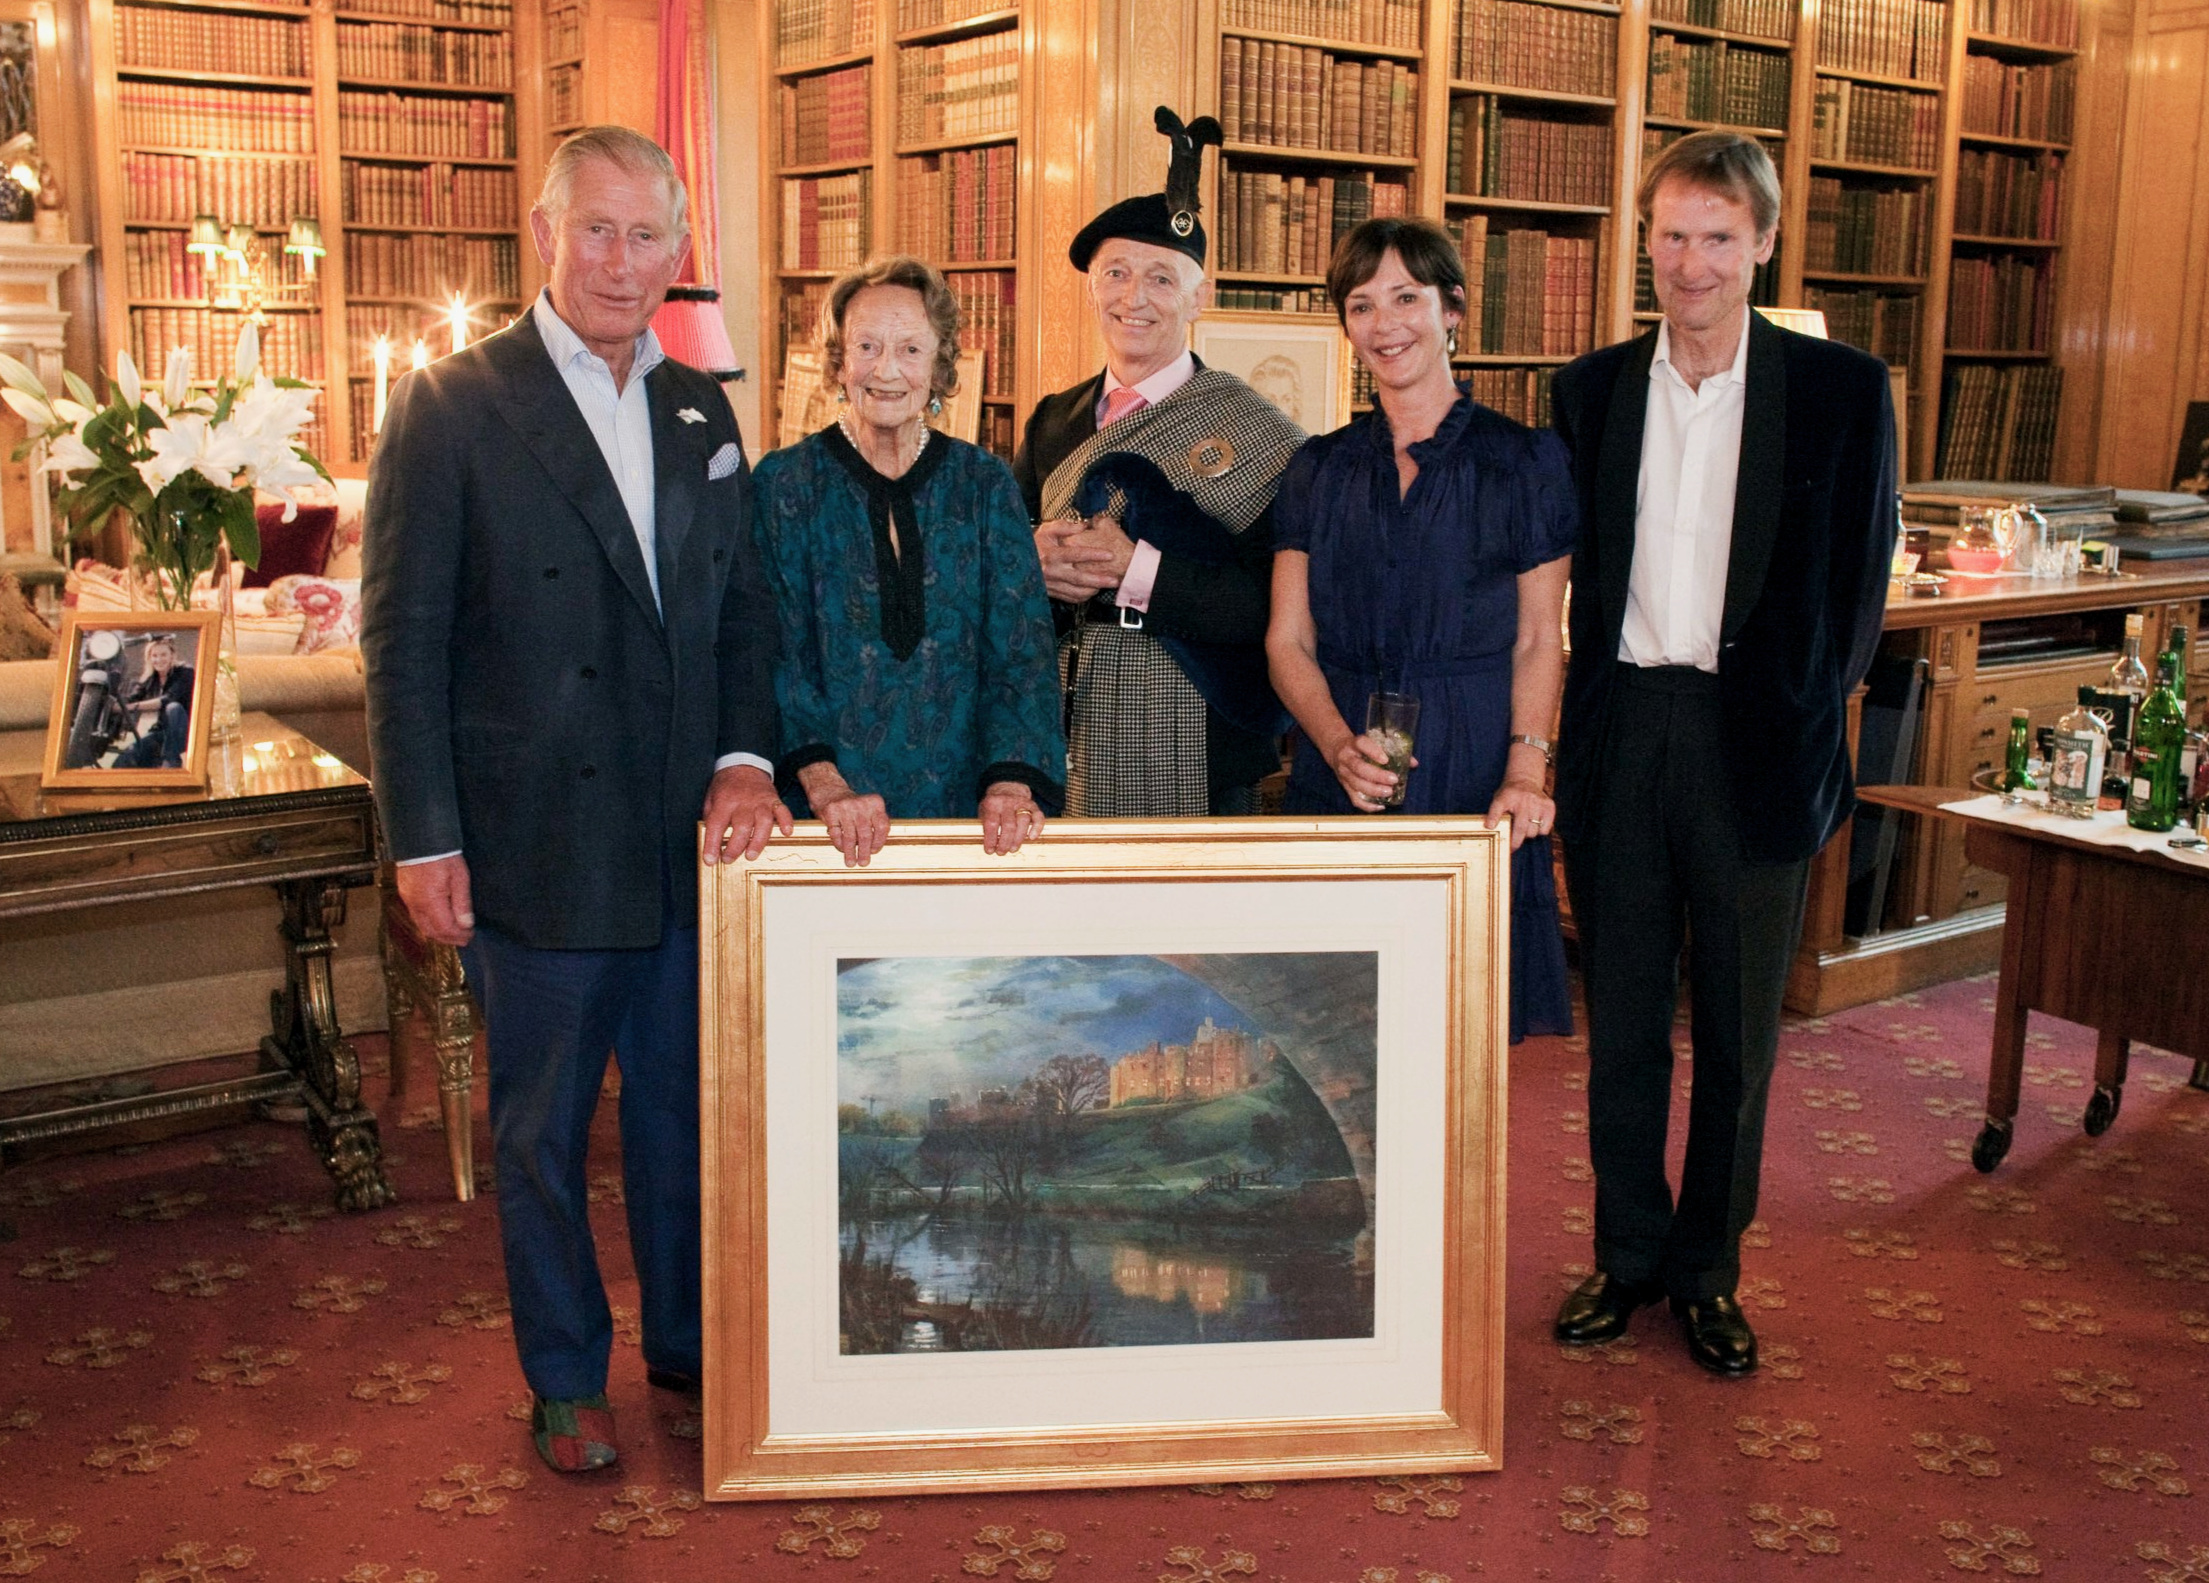 Prince Charles presenting on behalf of the Duke of Northumberland a painting of Alnwick Castle to Richard Butler to mark Richard's 30 Years as Piper to the Dukes of Northumberland    (left to right - HRH Prince Charles, Duchess Elizabeth of Northumberland, Richard Butler, Duchess Jane of Northumberland, the Duke of Northumberland )